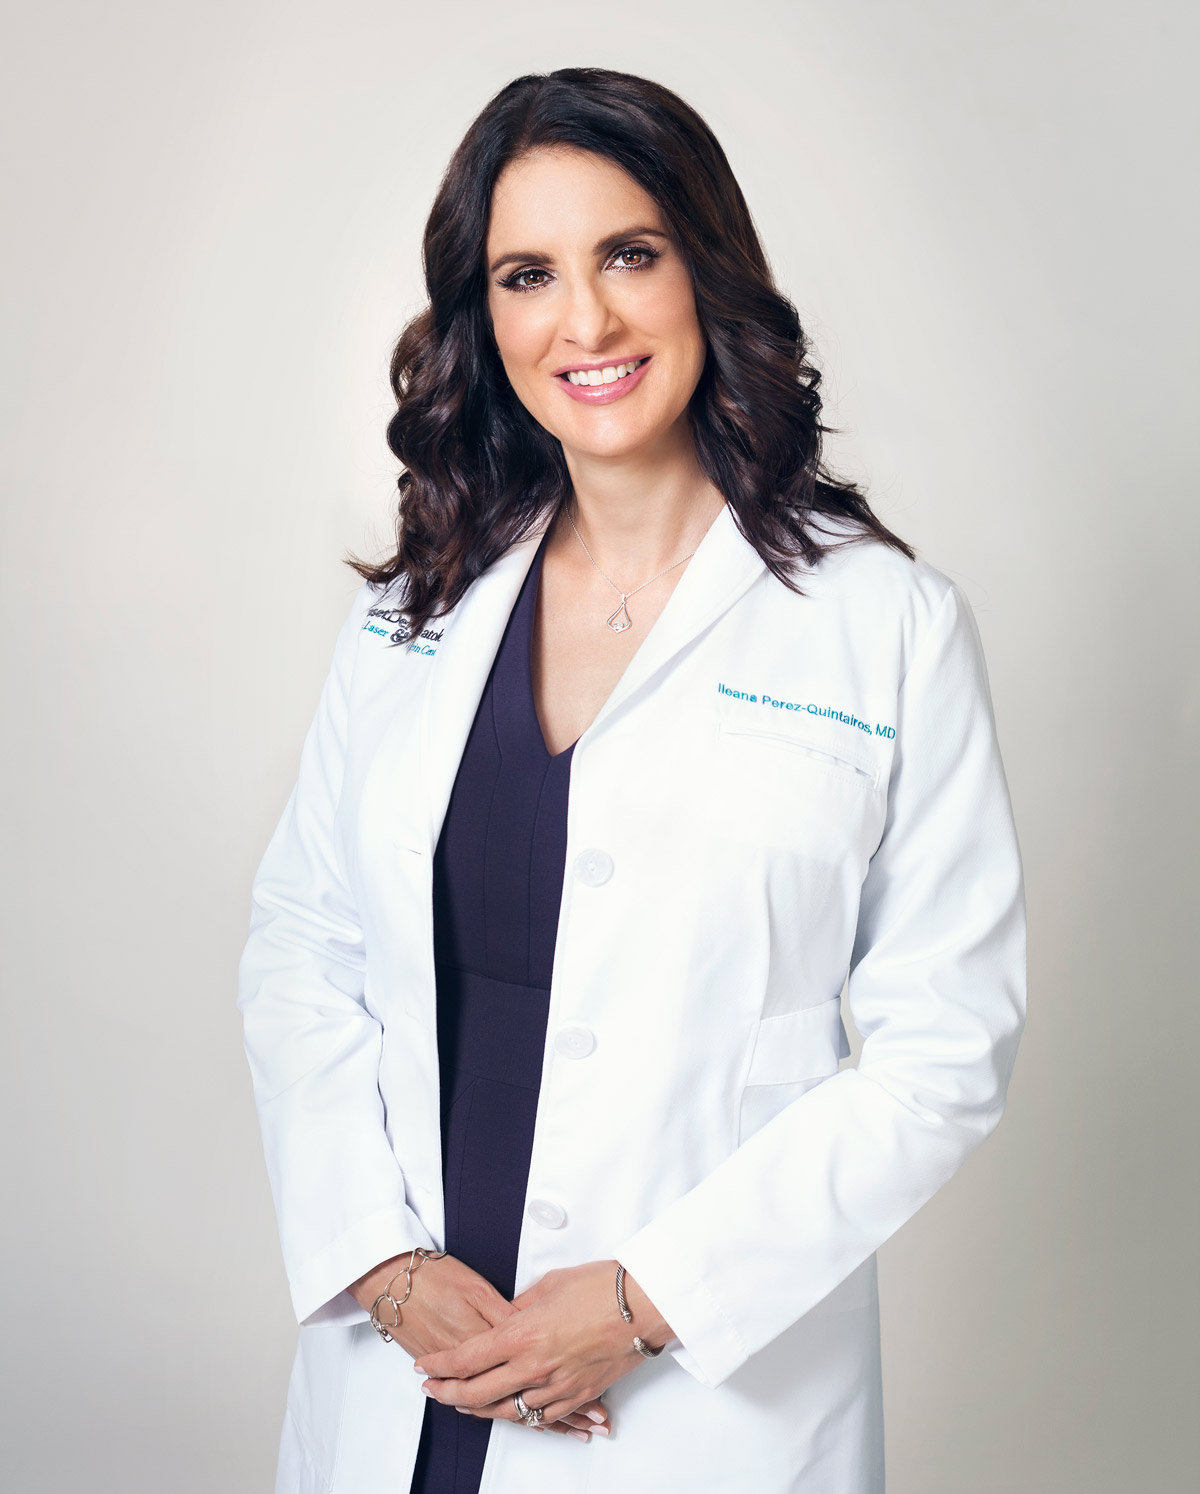 Photo of Ileana Perez-Quintairos, MD, for her dermatology business in South Miami, FL.